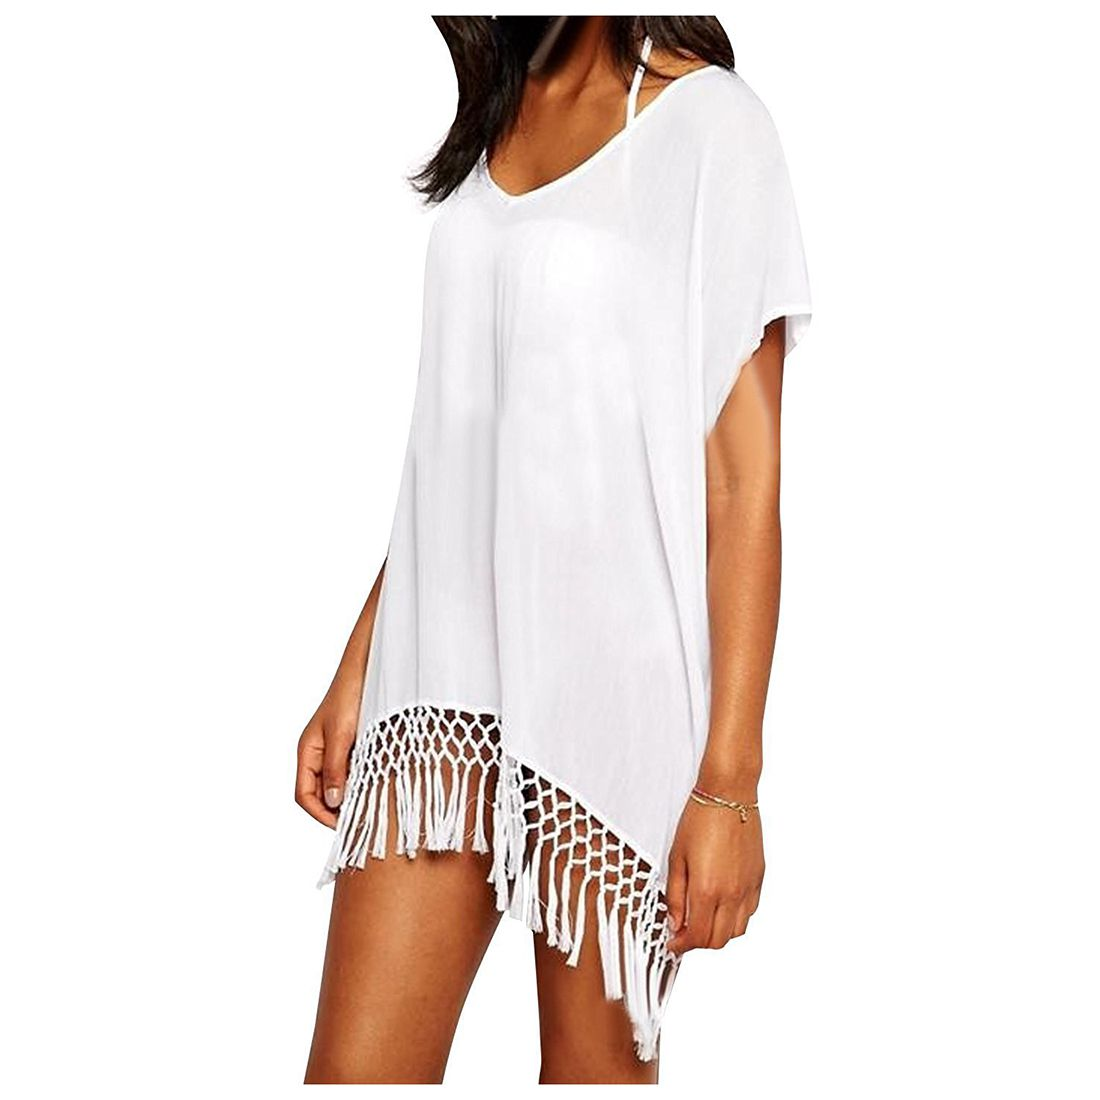 Womens Tassel Oversized Beach Cover Up Swimsuit Bathing Suit Beach Dress White